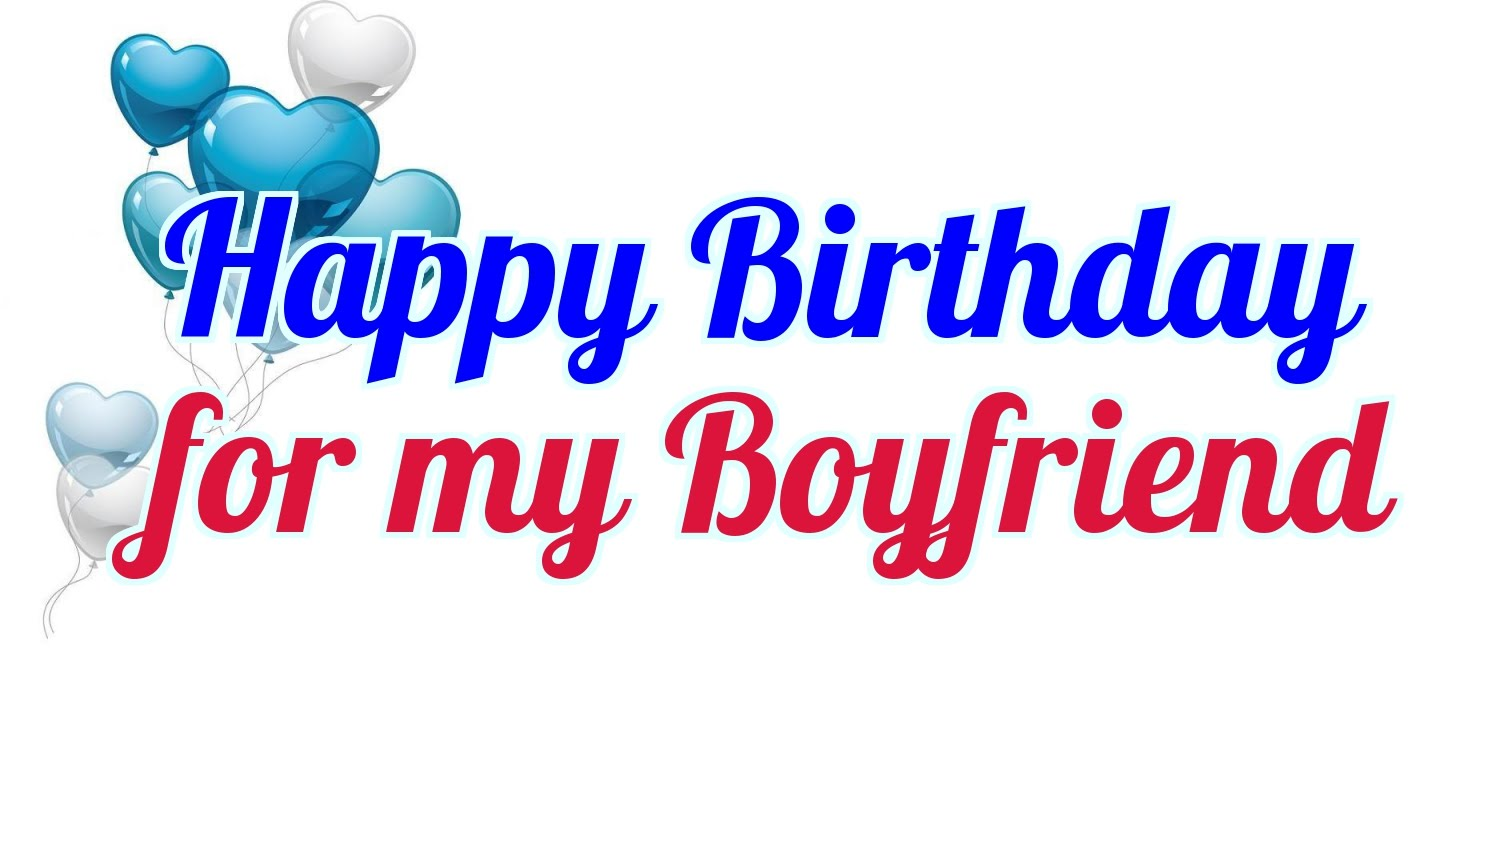 Happy birthday for my Boyfriend wishes and wallpaper